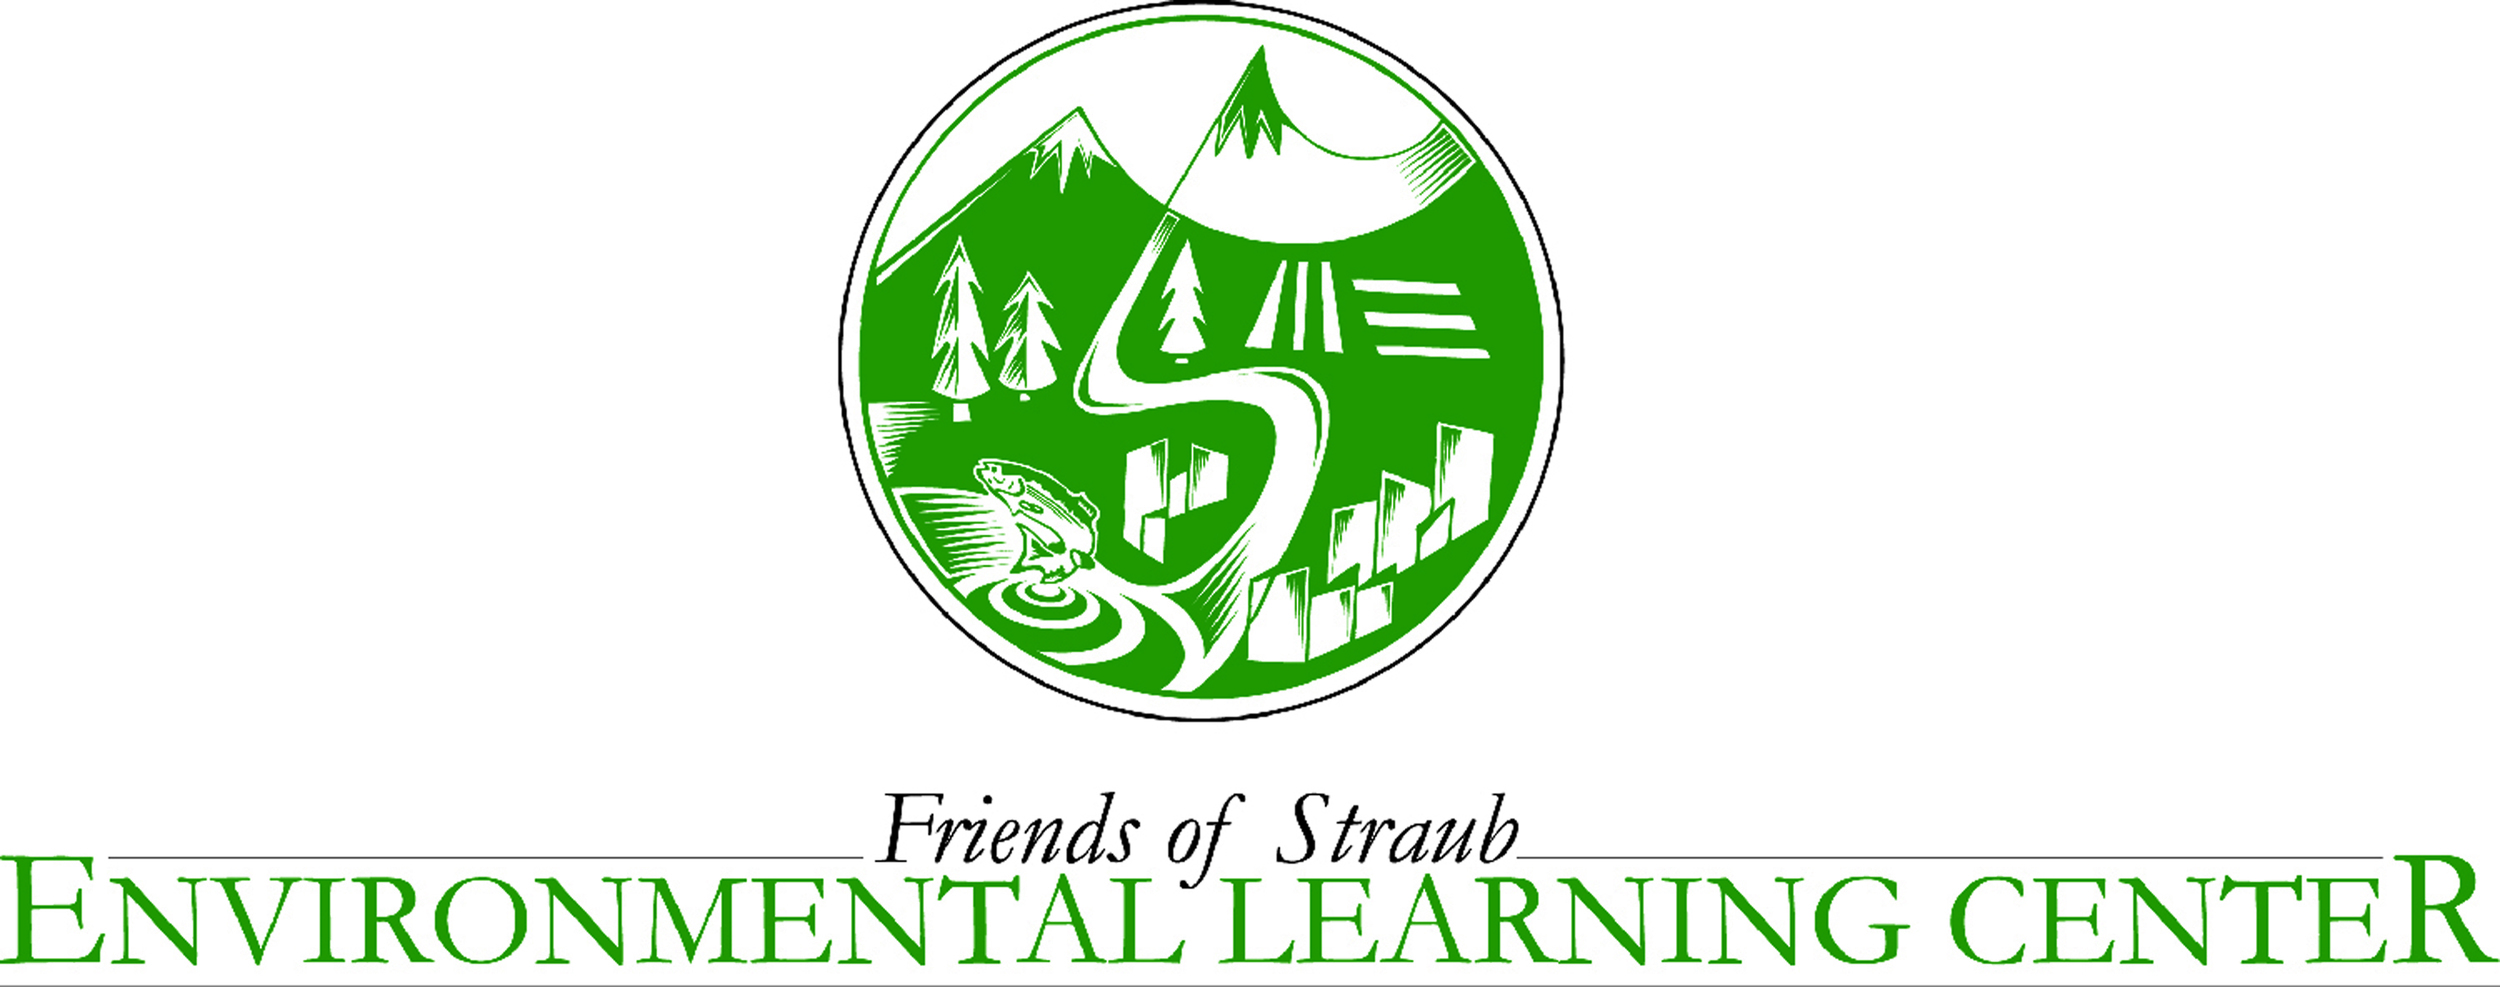 Friends of Straub Environmental Learning Center